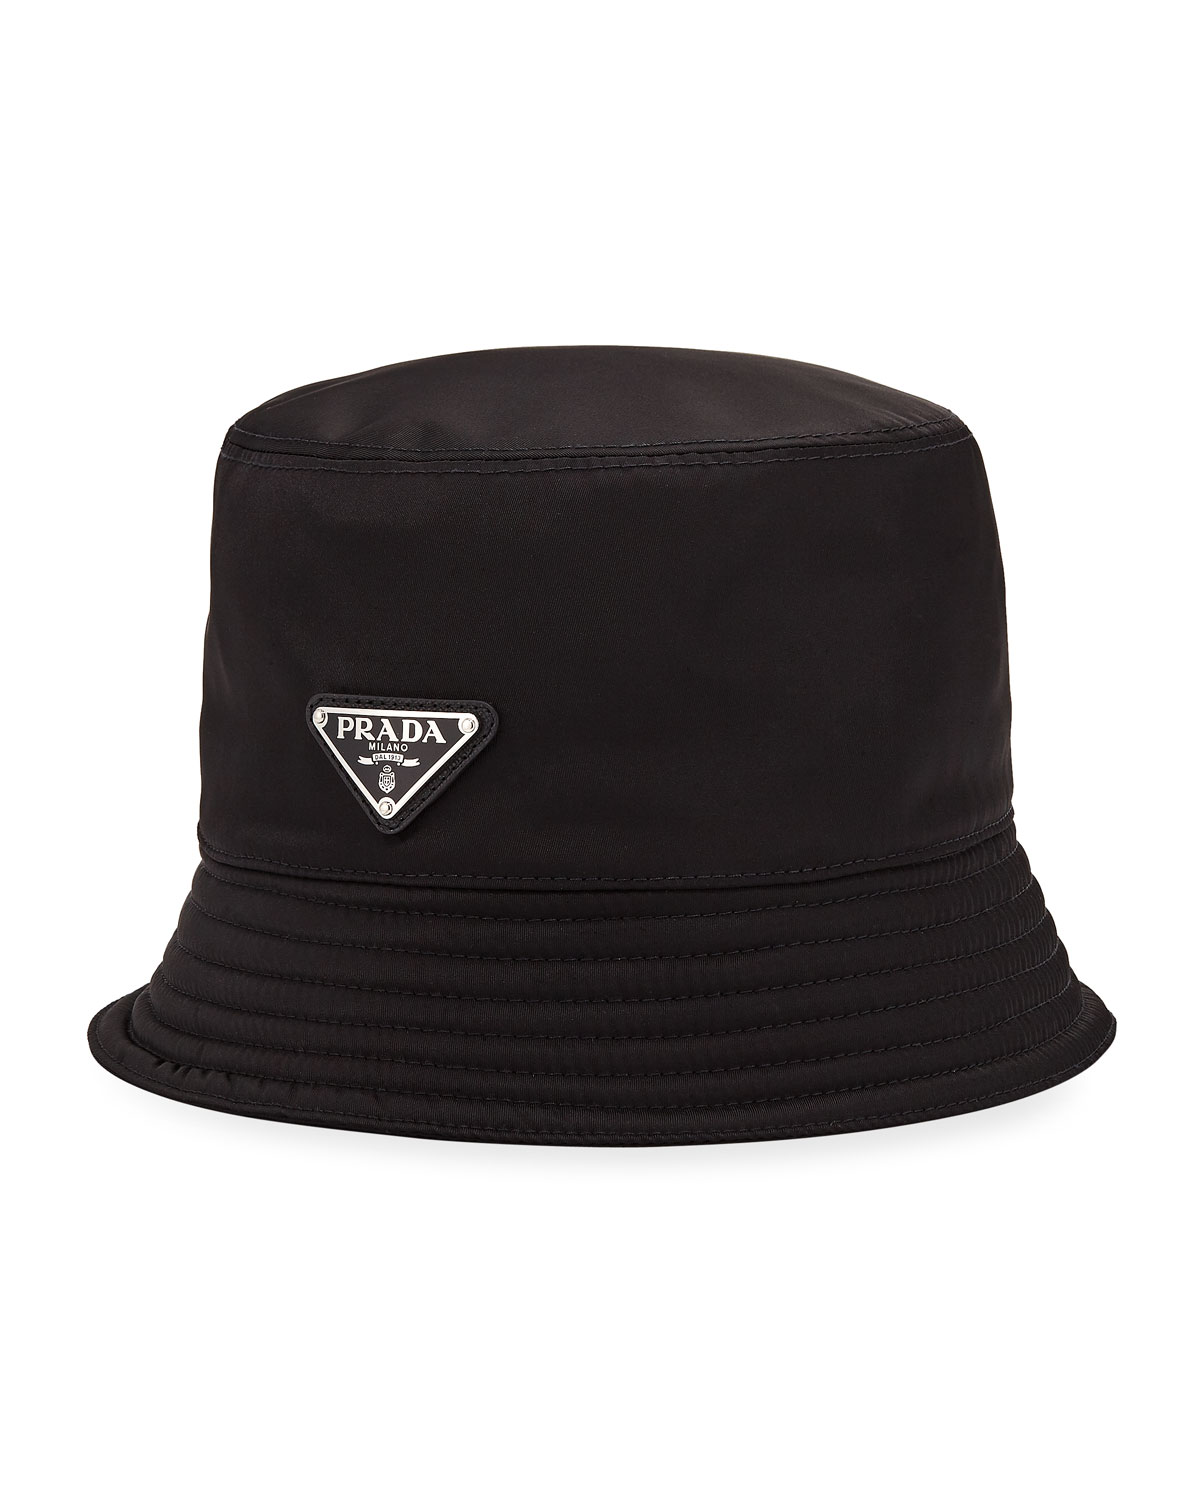 Prada Men s Nylon Bucket Hat with Logo  2b830eec93e